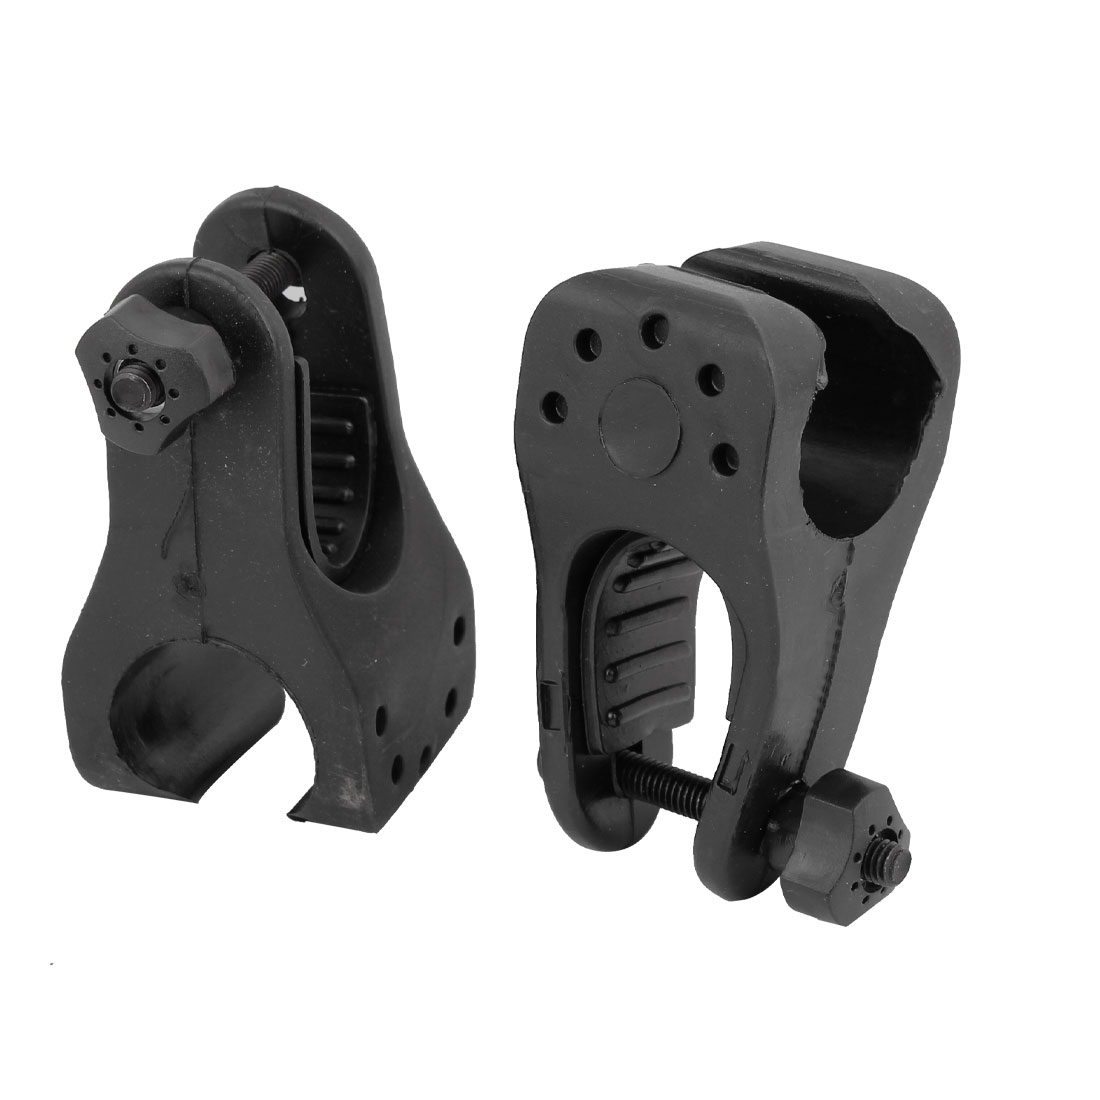 2 Pcs Black Rubber Bicycle Adjustable Flashlight Torch Lamp Holder